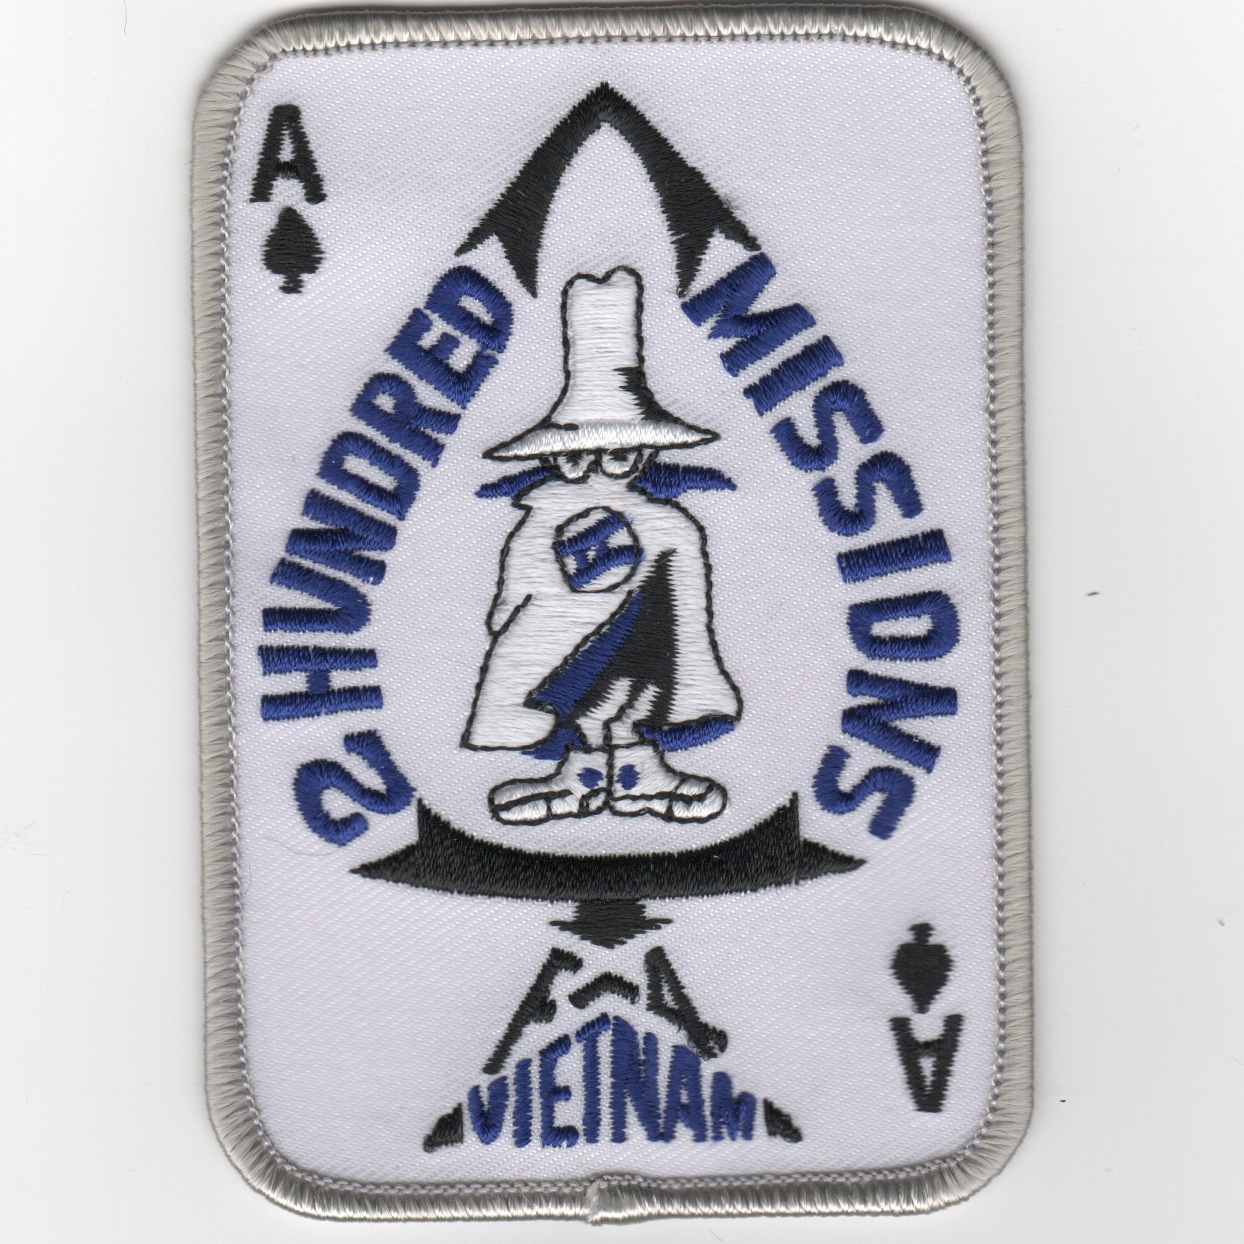 F-4 200 Missions Patch